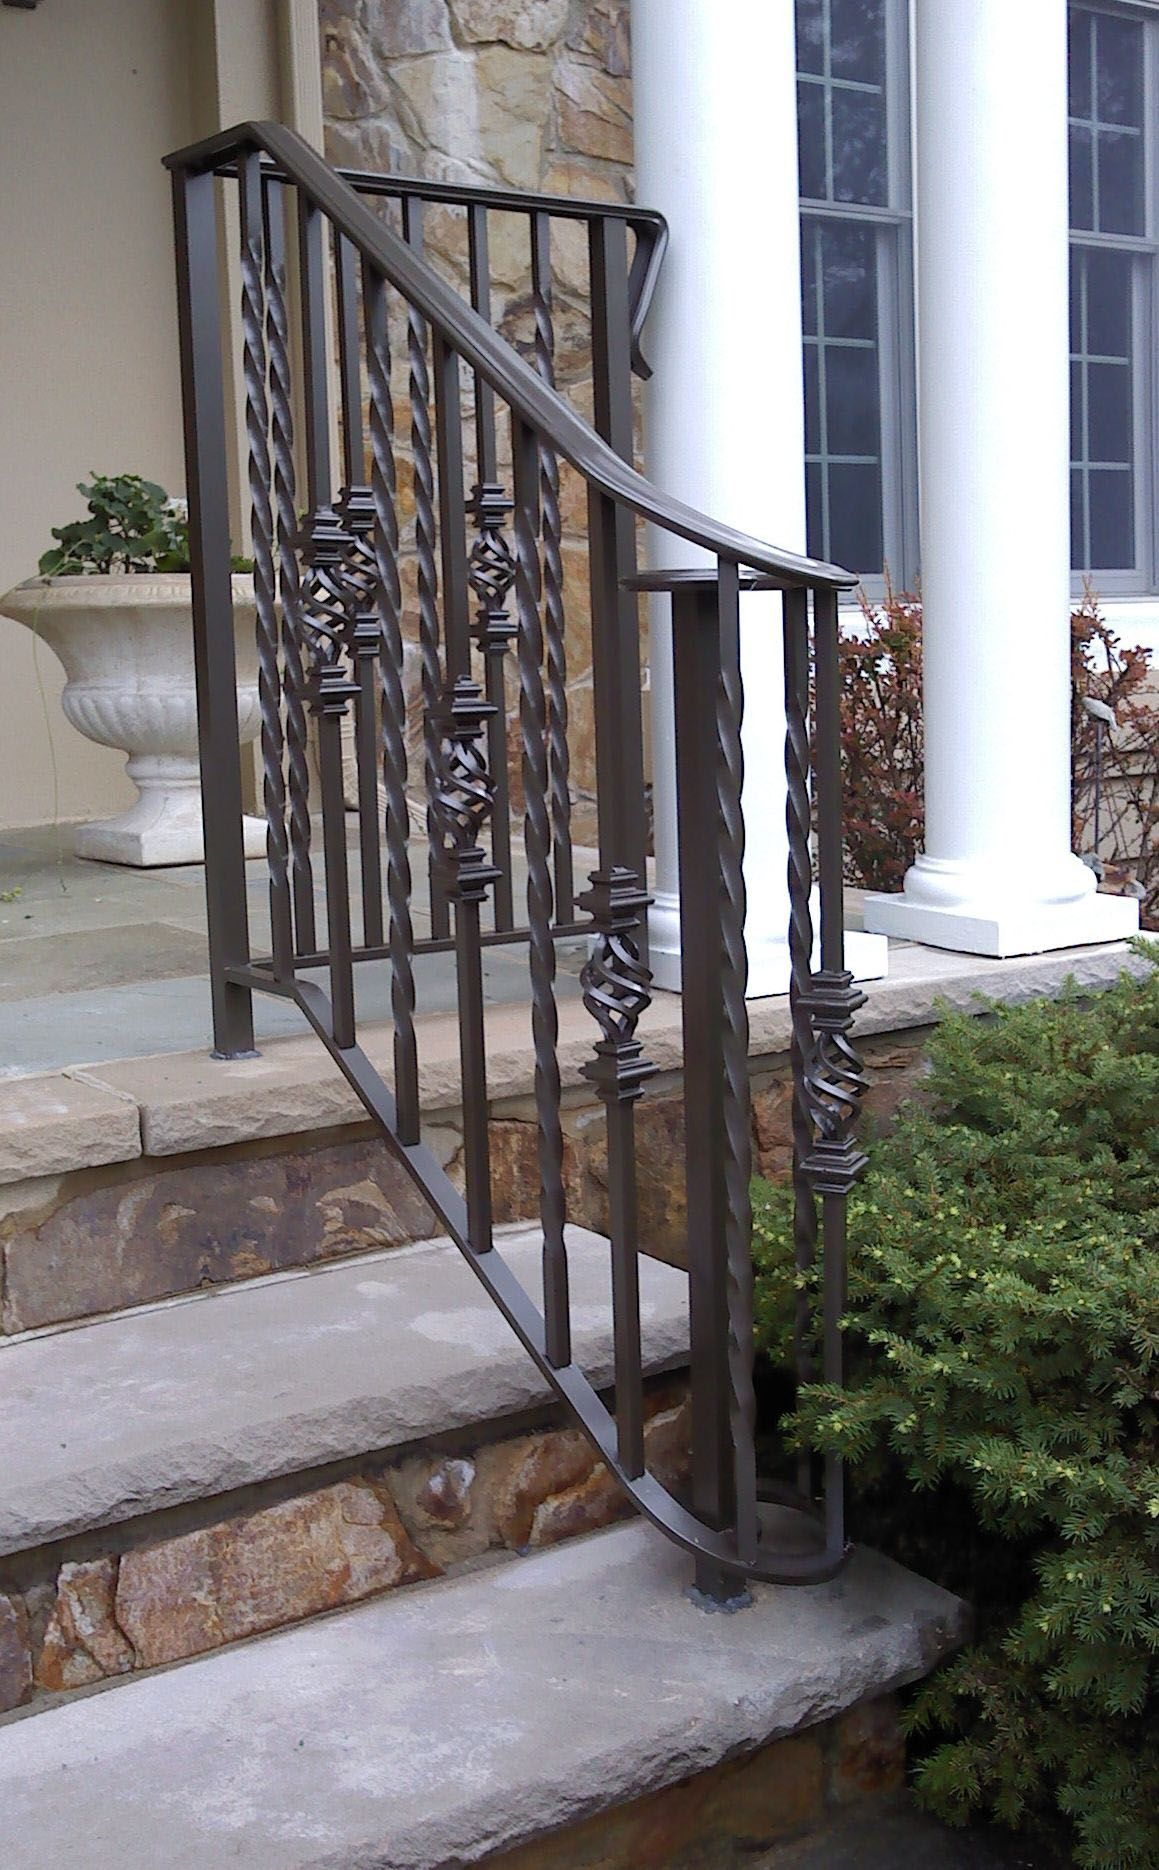 Outdoor Stair Railing Ideas Exterior Stairs Iron Stair Railing Outdoor Stair Railing